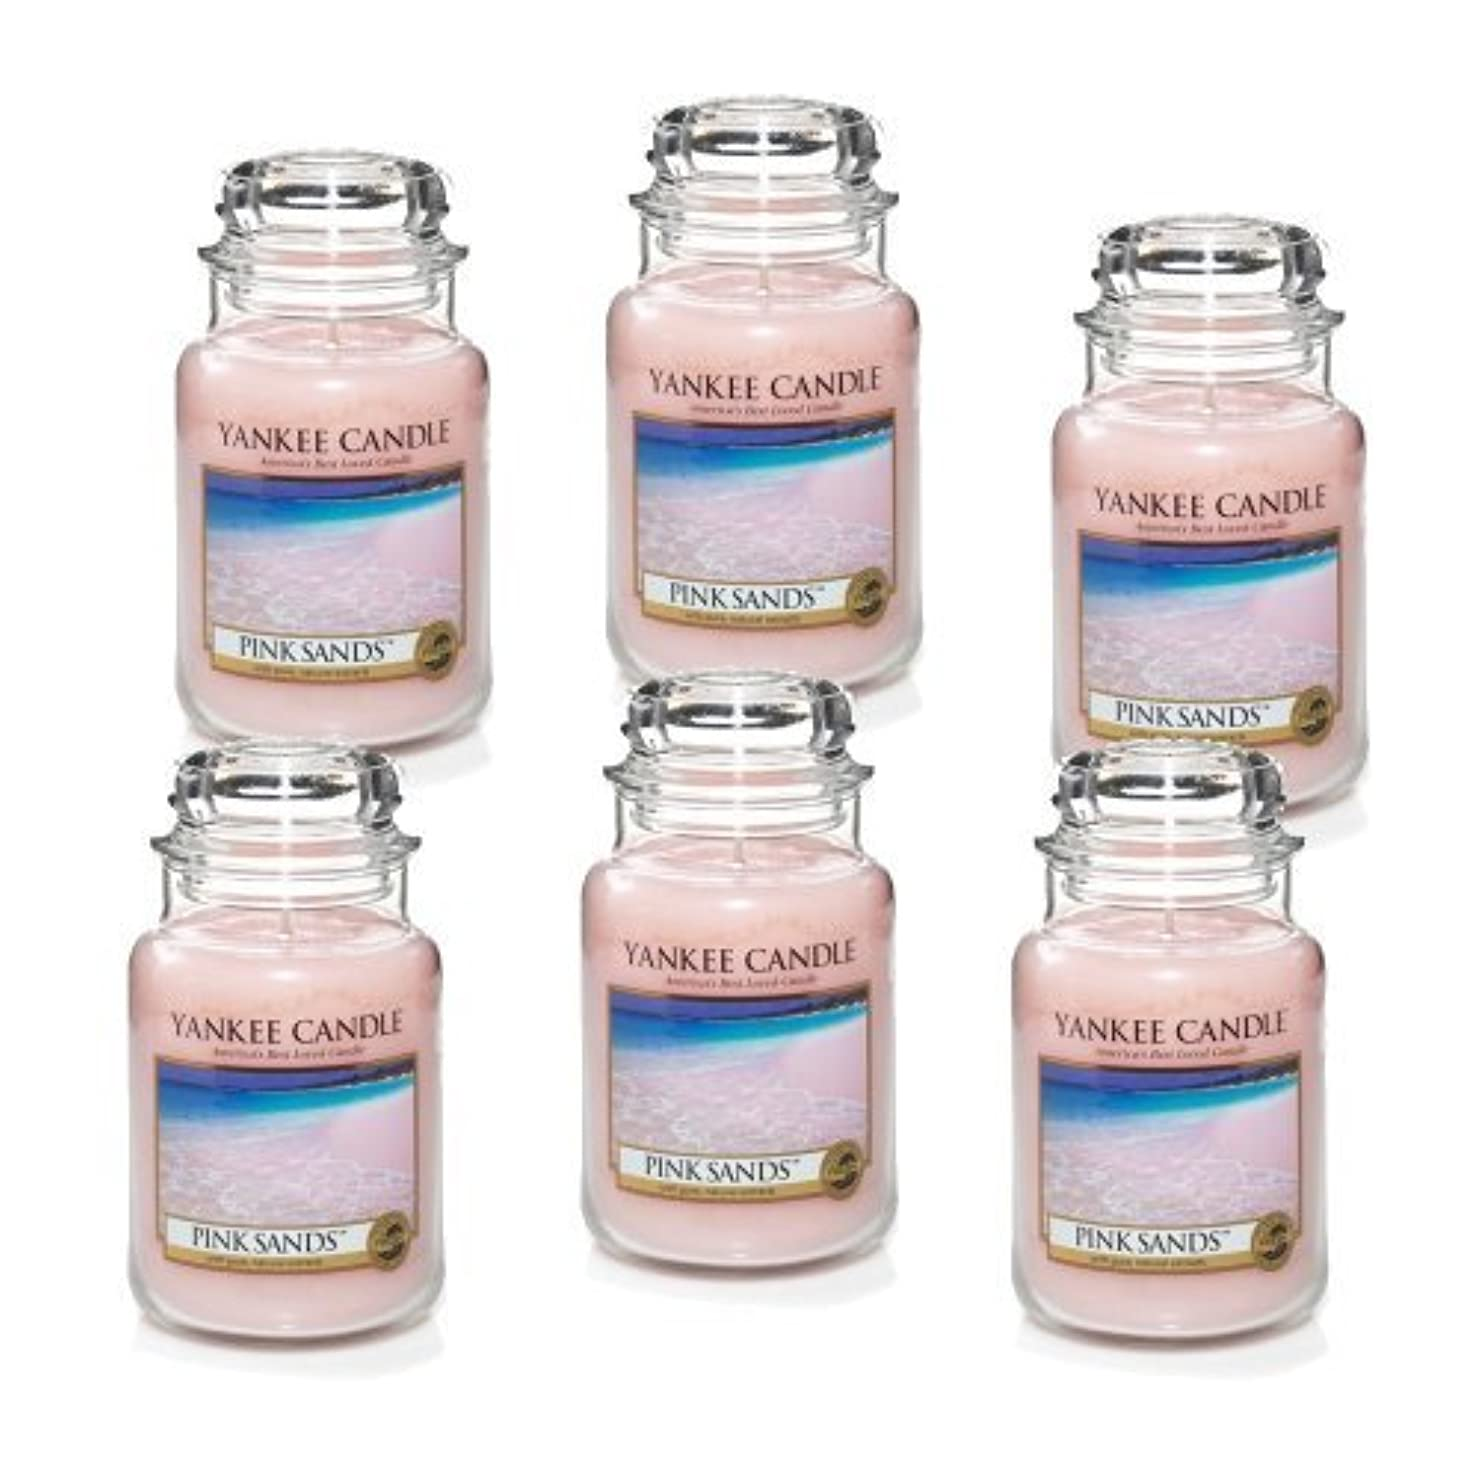 精査する成功した持ってるYankee Candle Company 22-Ounce Pink Sands Jar Candle, Large, Set of 6 by Amazon source [並行輸入品]